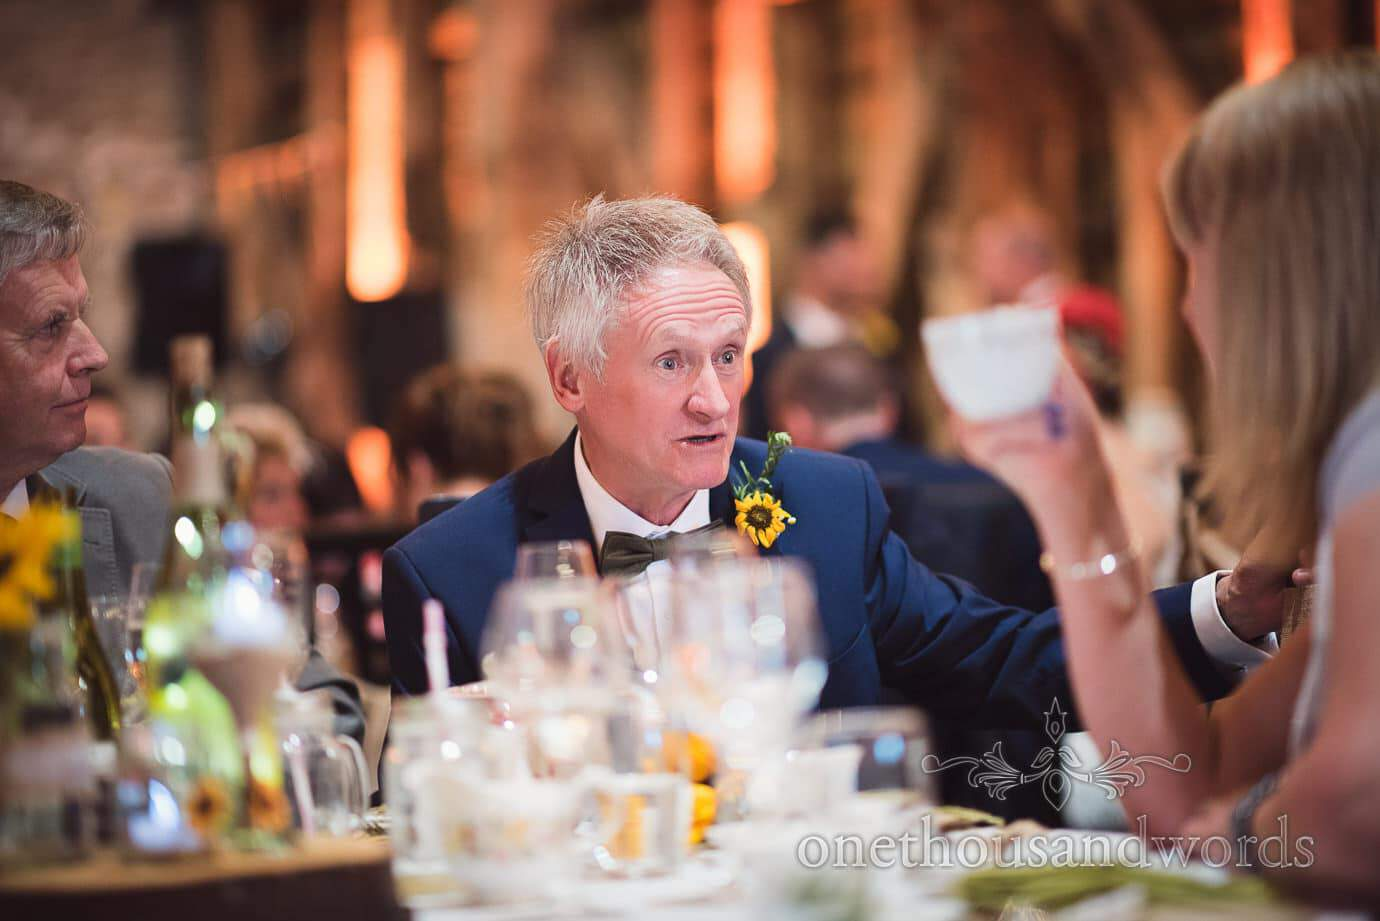 Father of the groom in bow tie, sunflower button hole and blue suit during wedding breakfast